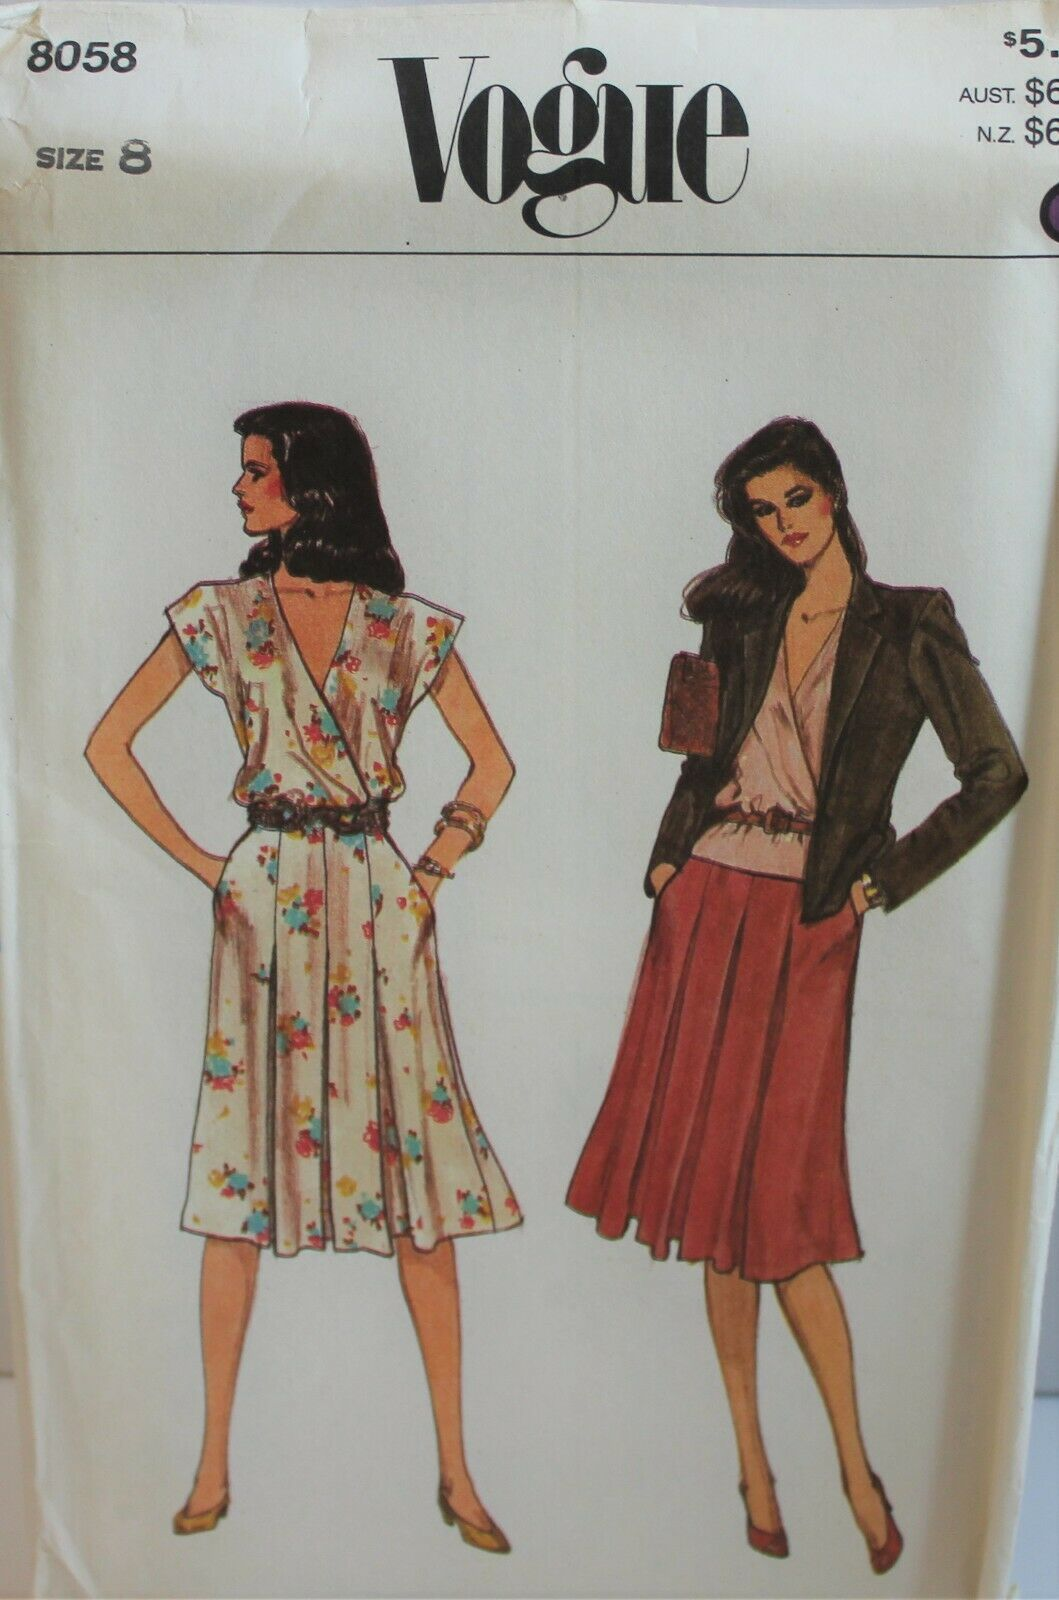 Primary image for Vogue Sewing Pattern 8058 Misses Jacket Blouse Skirt Size 8